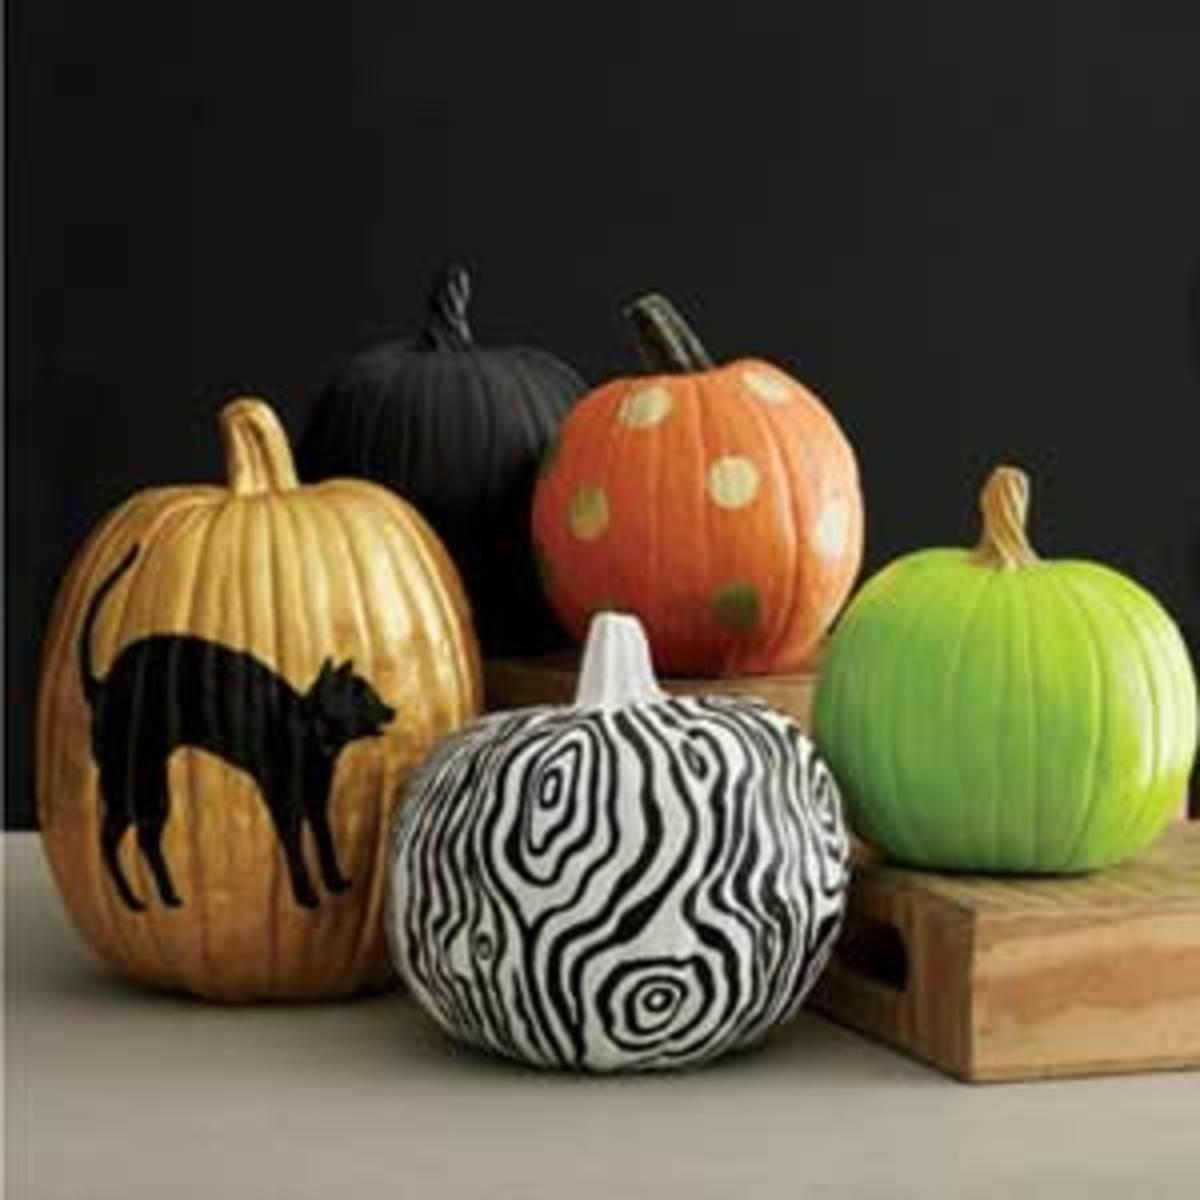 Carve Pumpkin Designs Rachael Ray Every Day